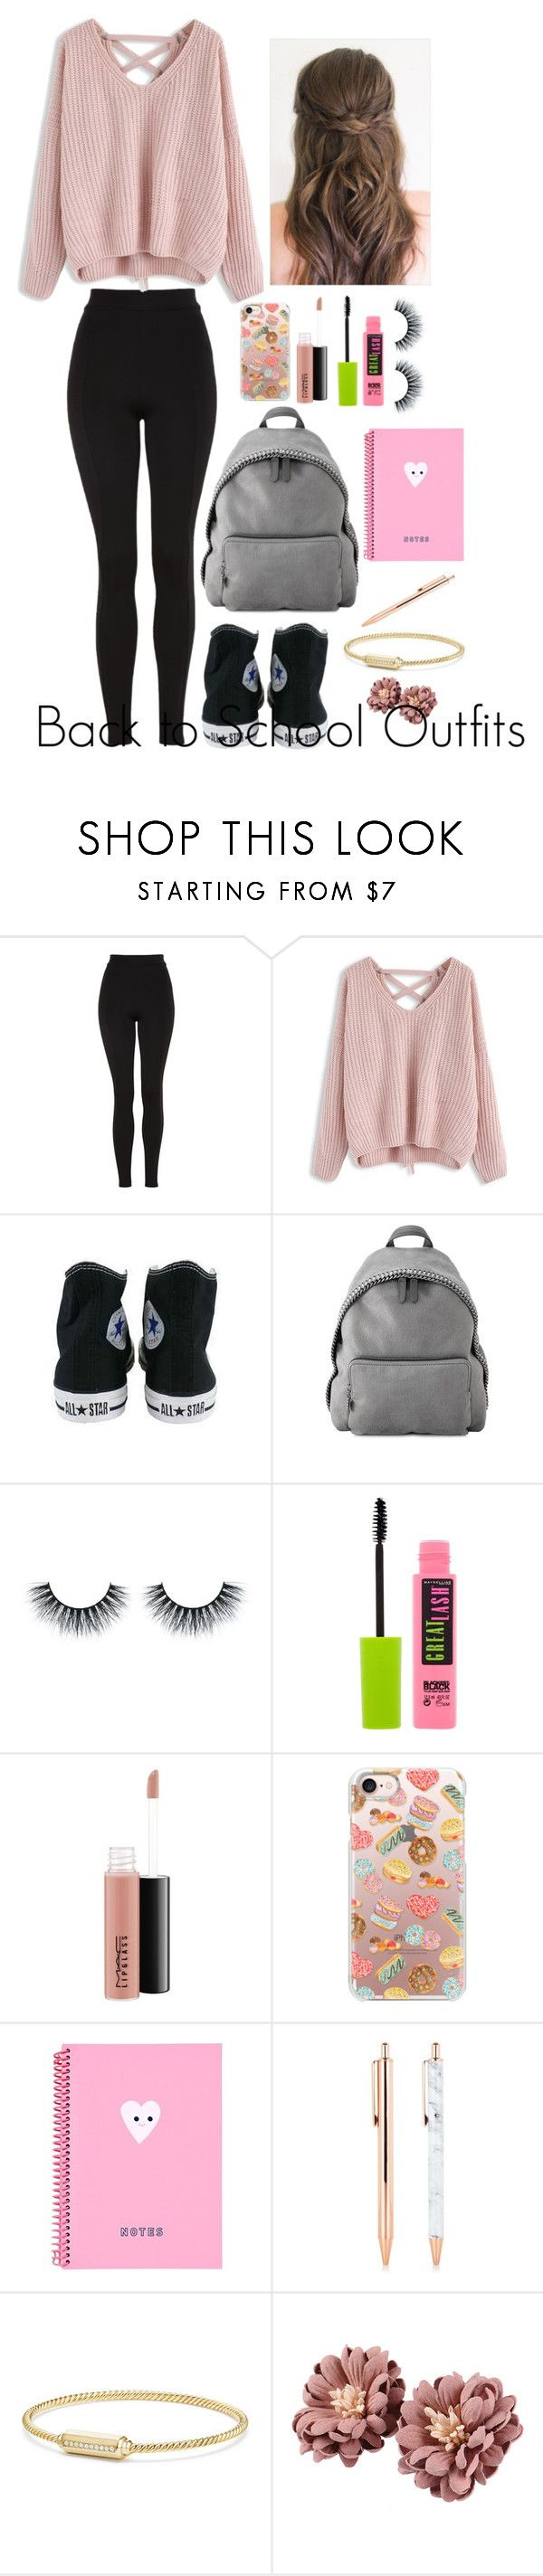 """""""Back to School Outfits #11"""" by gussied-up on Polyvore featuring Topshop, Chicwish, Converse, STELLA McCARTNEY, Maybelline, MAC Cosmetics, Casetify and David Yurman"""